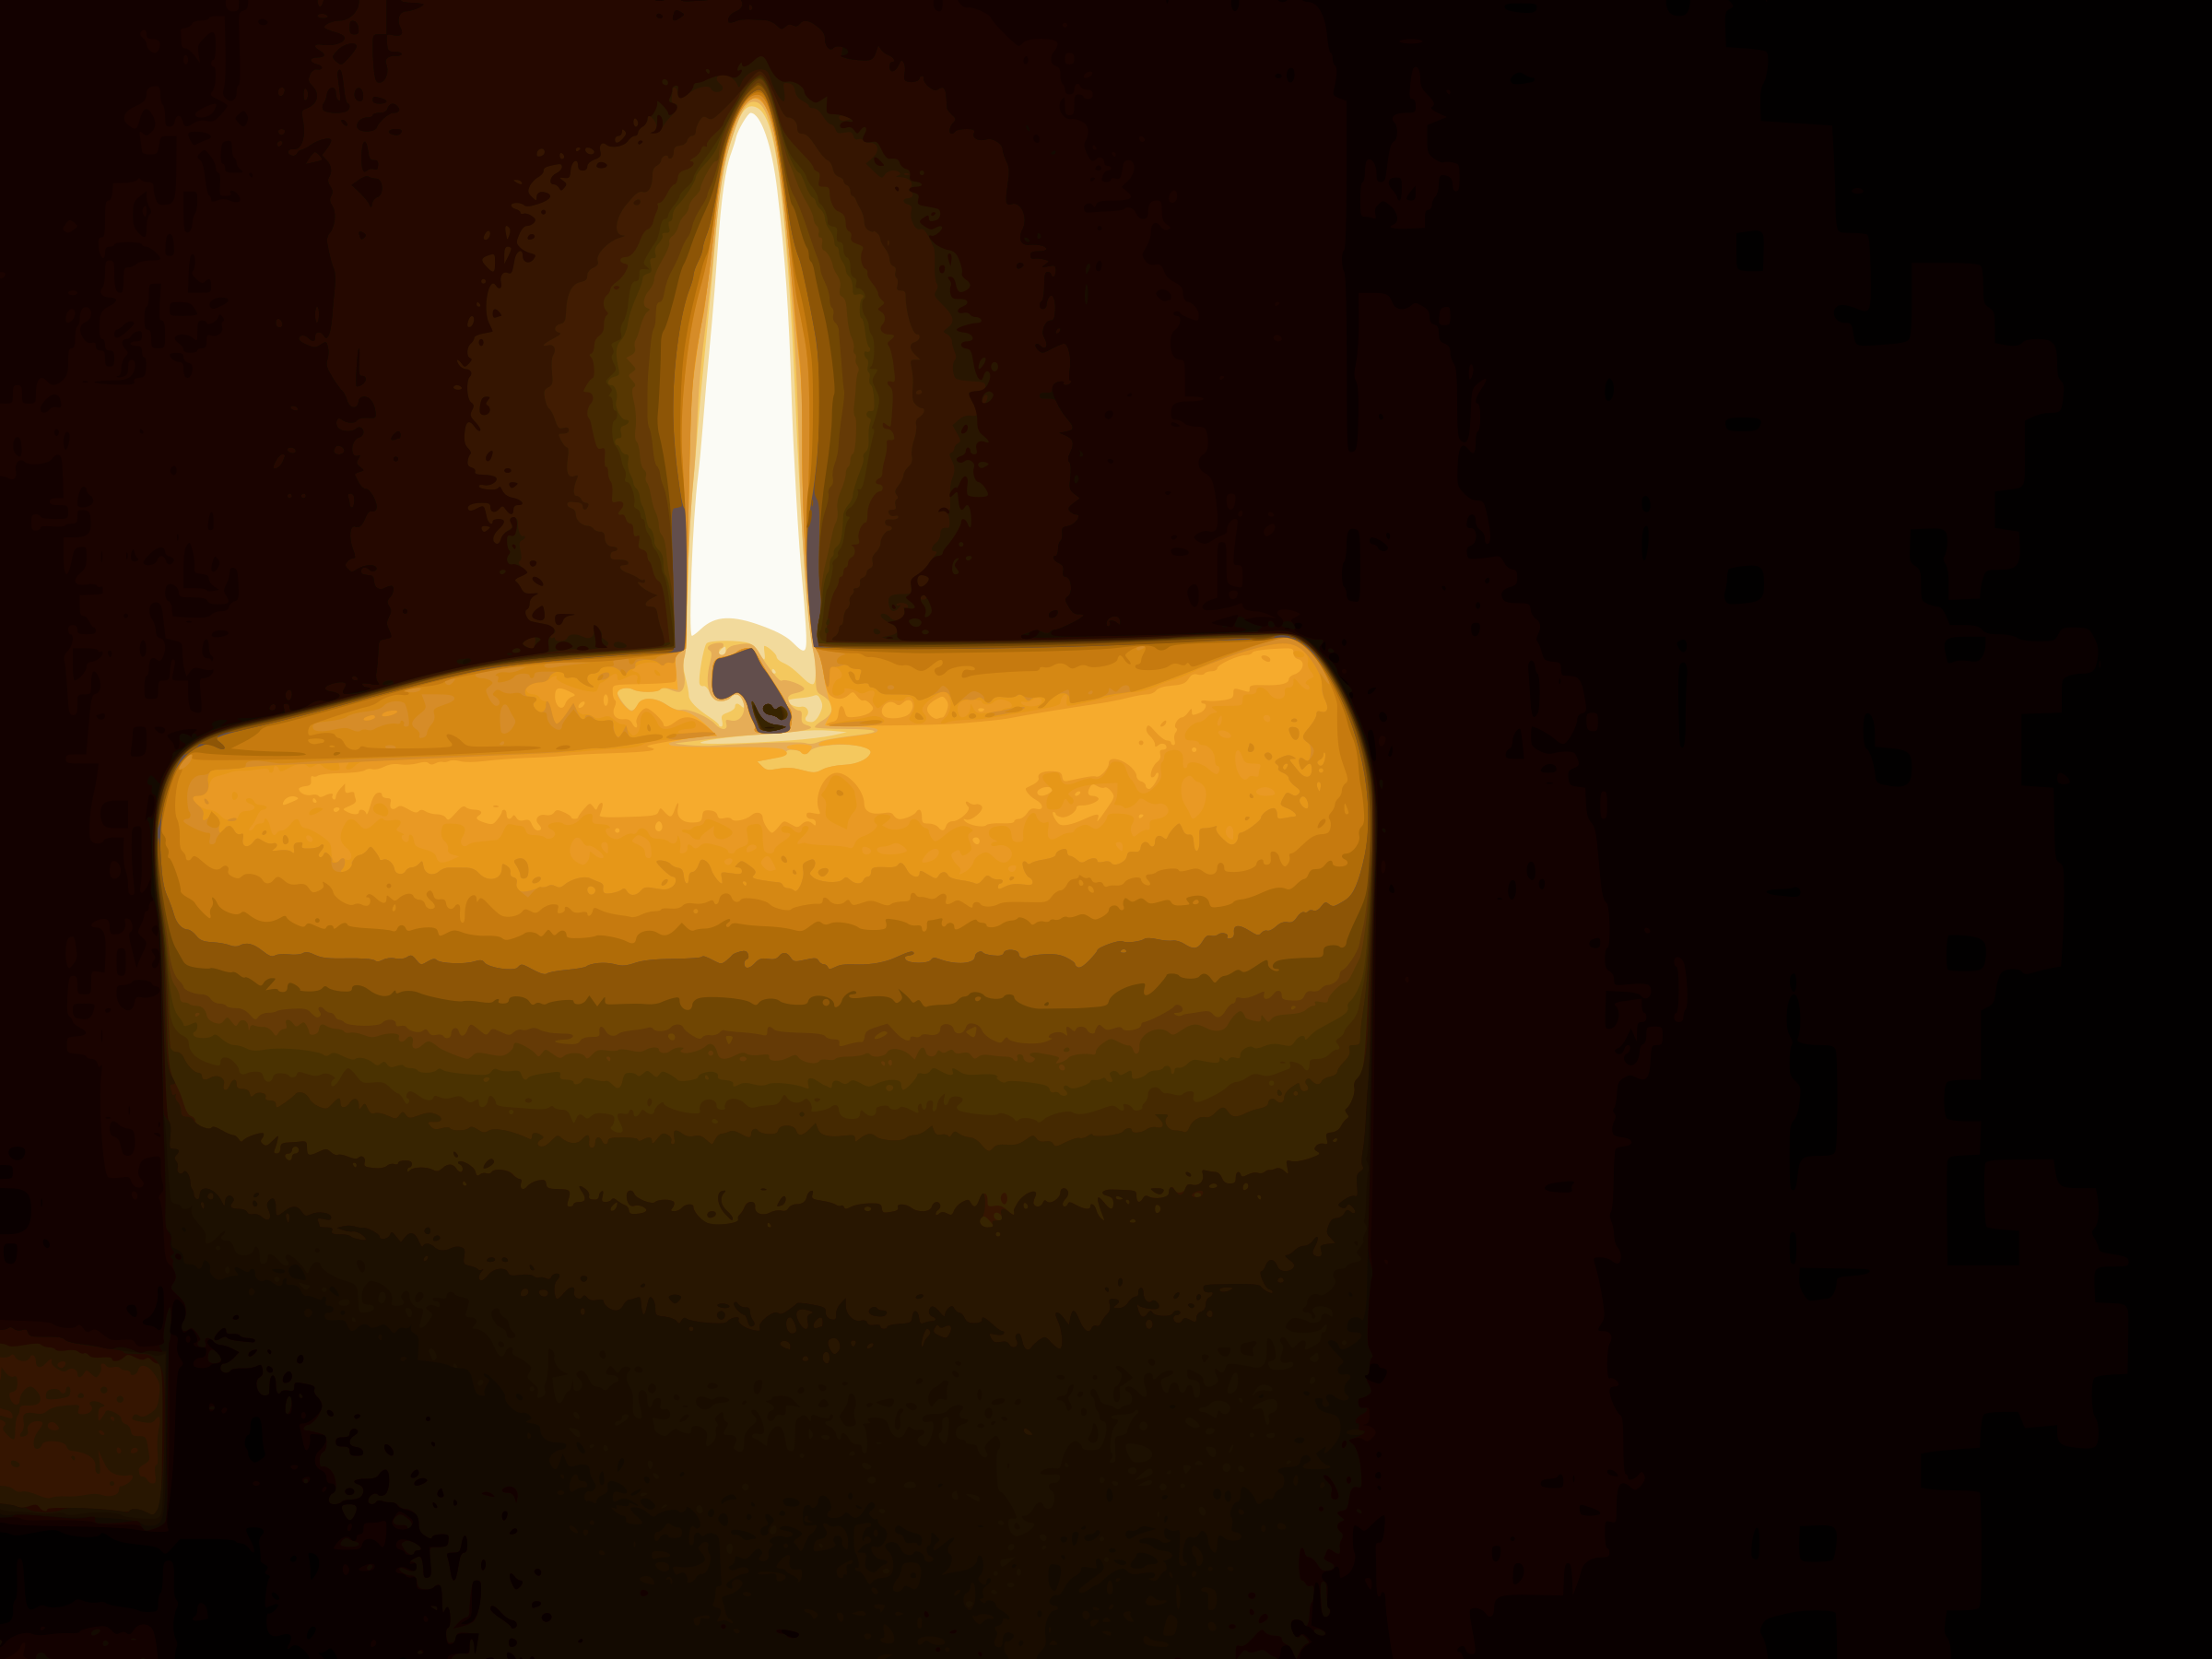 This Free Icons Png Design Of Candle-burning PlusPng.com  - Burning Candle PNG HD